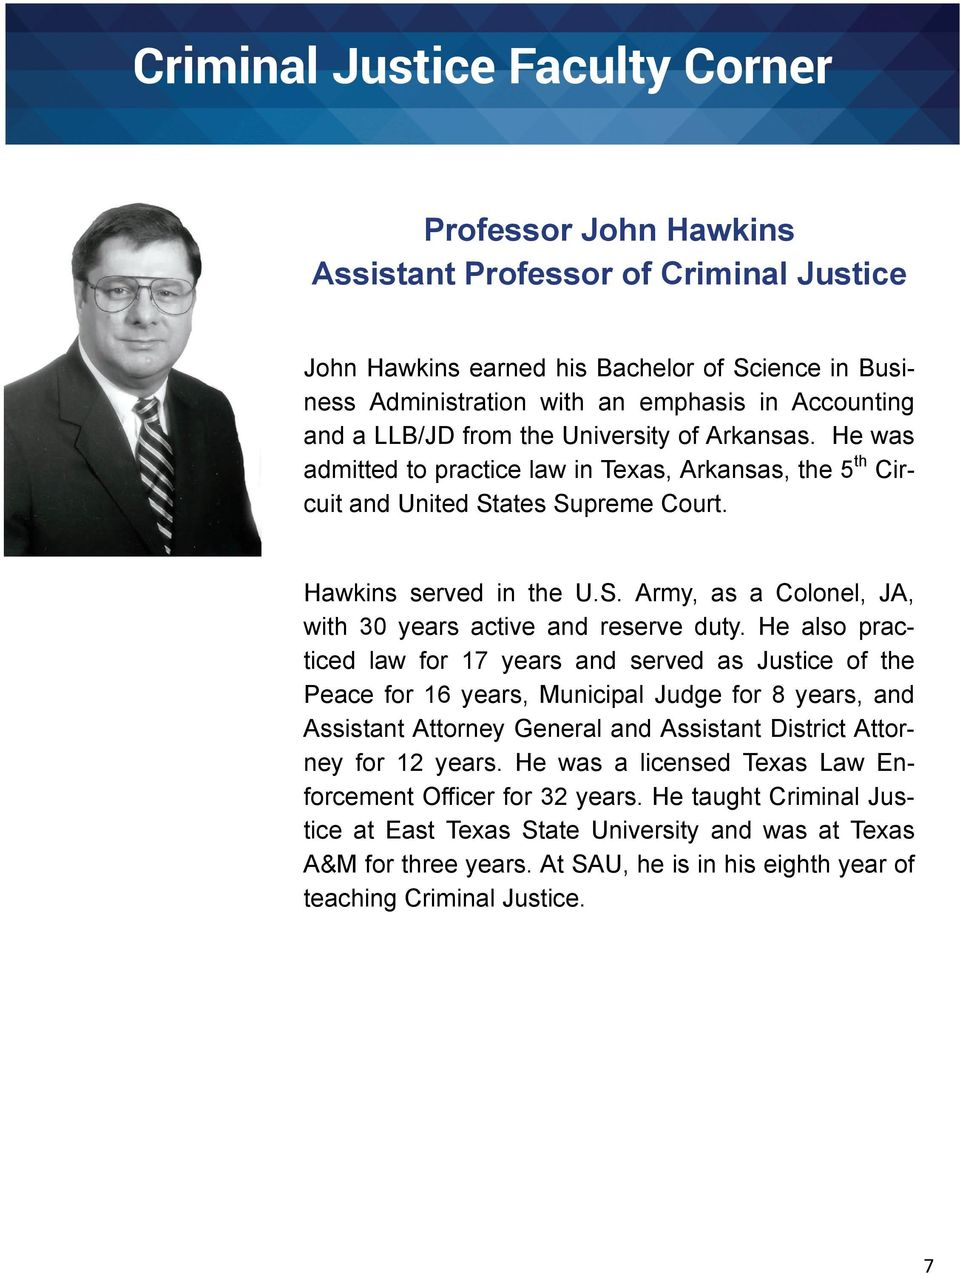 He also practiced law for 17 years and served as Justice of the Peace for 16 years, Municipal Judge for 8 years, and Assistant Attorney General and Assistant District Attorney for 12 years.